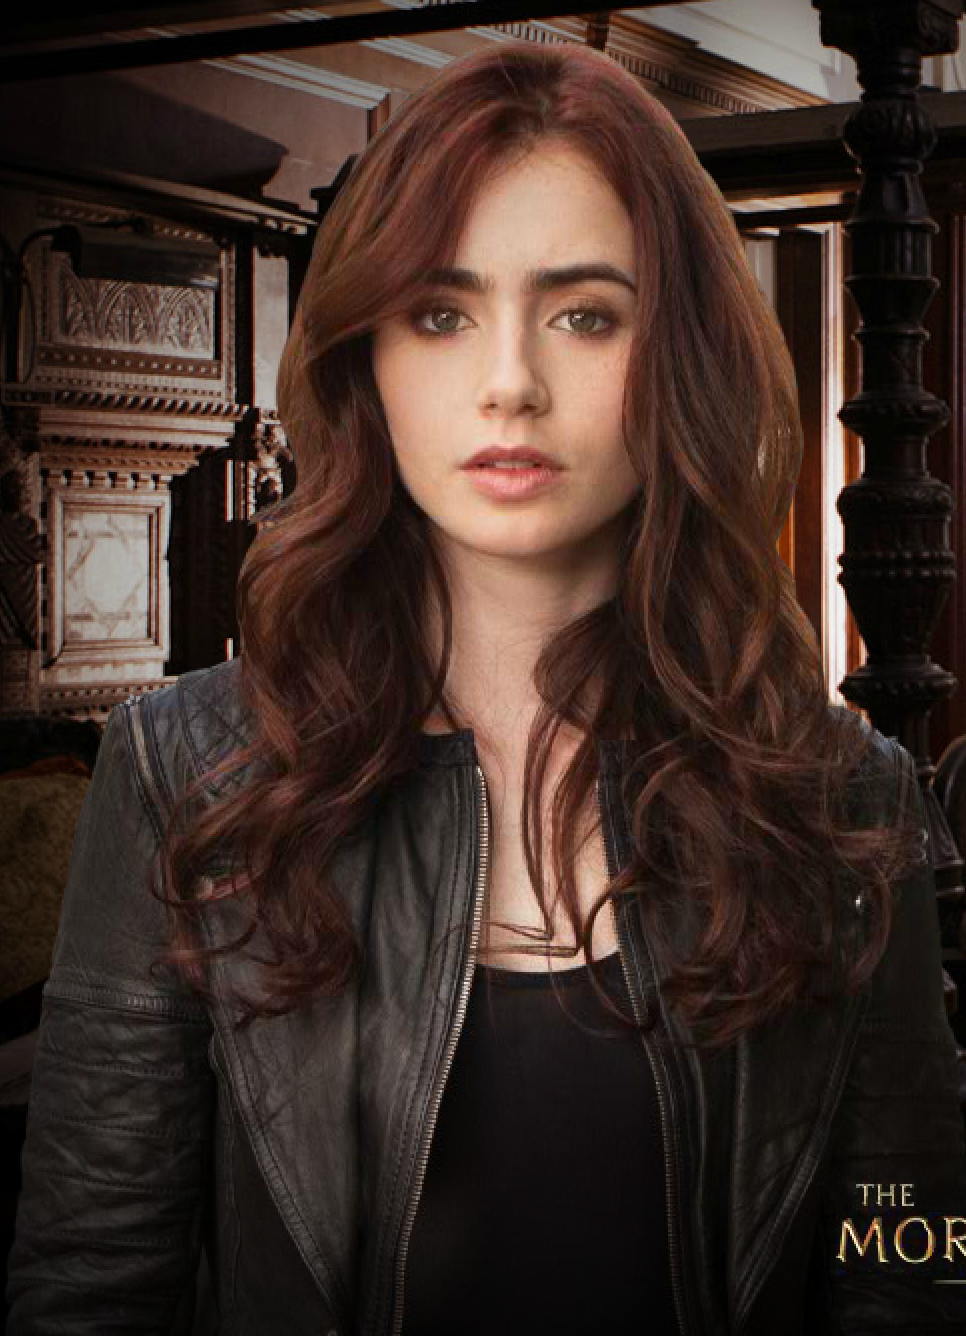 Clary Fray The Mortal Instruments Pinterest Mortal Instruments